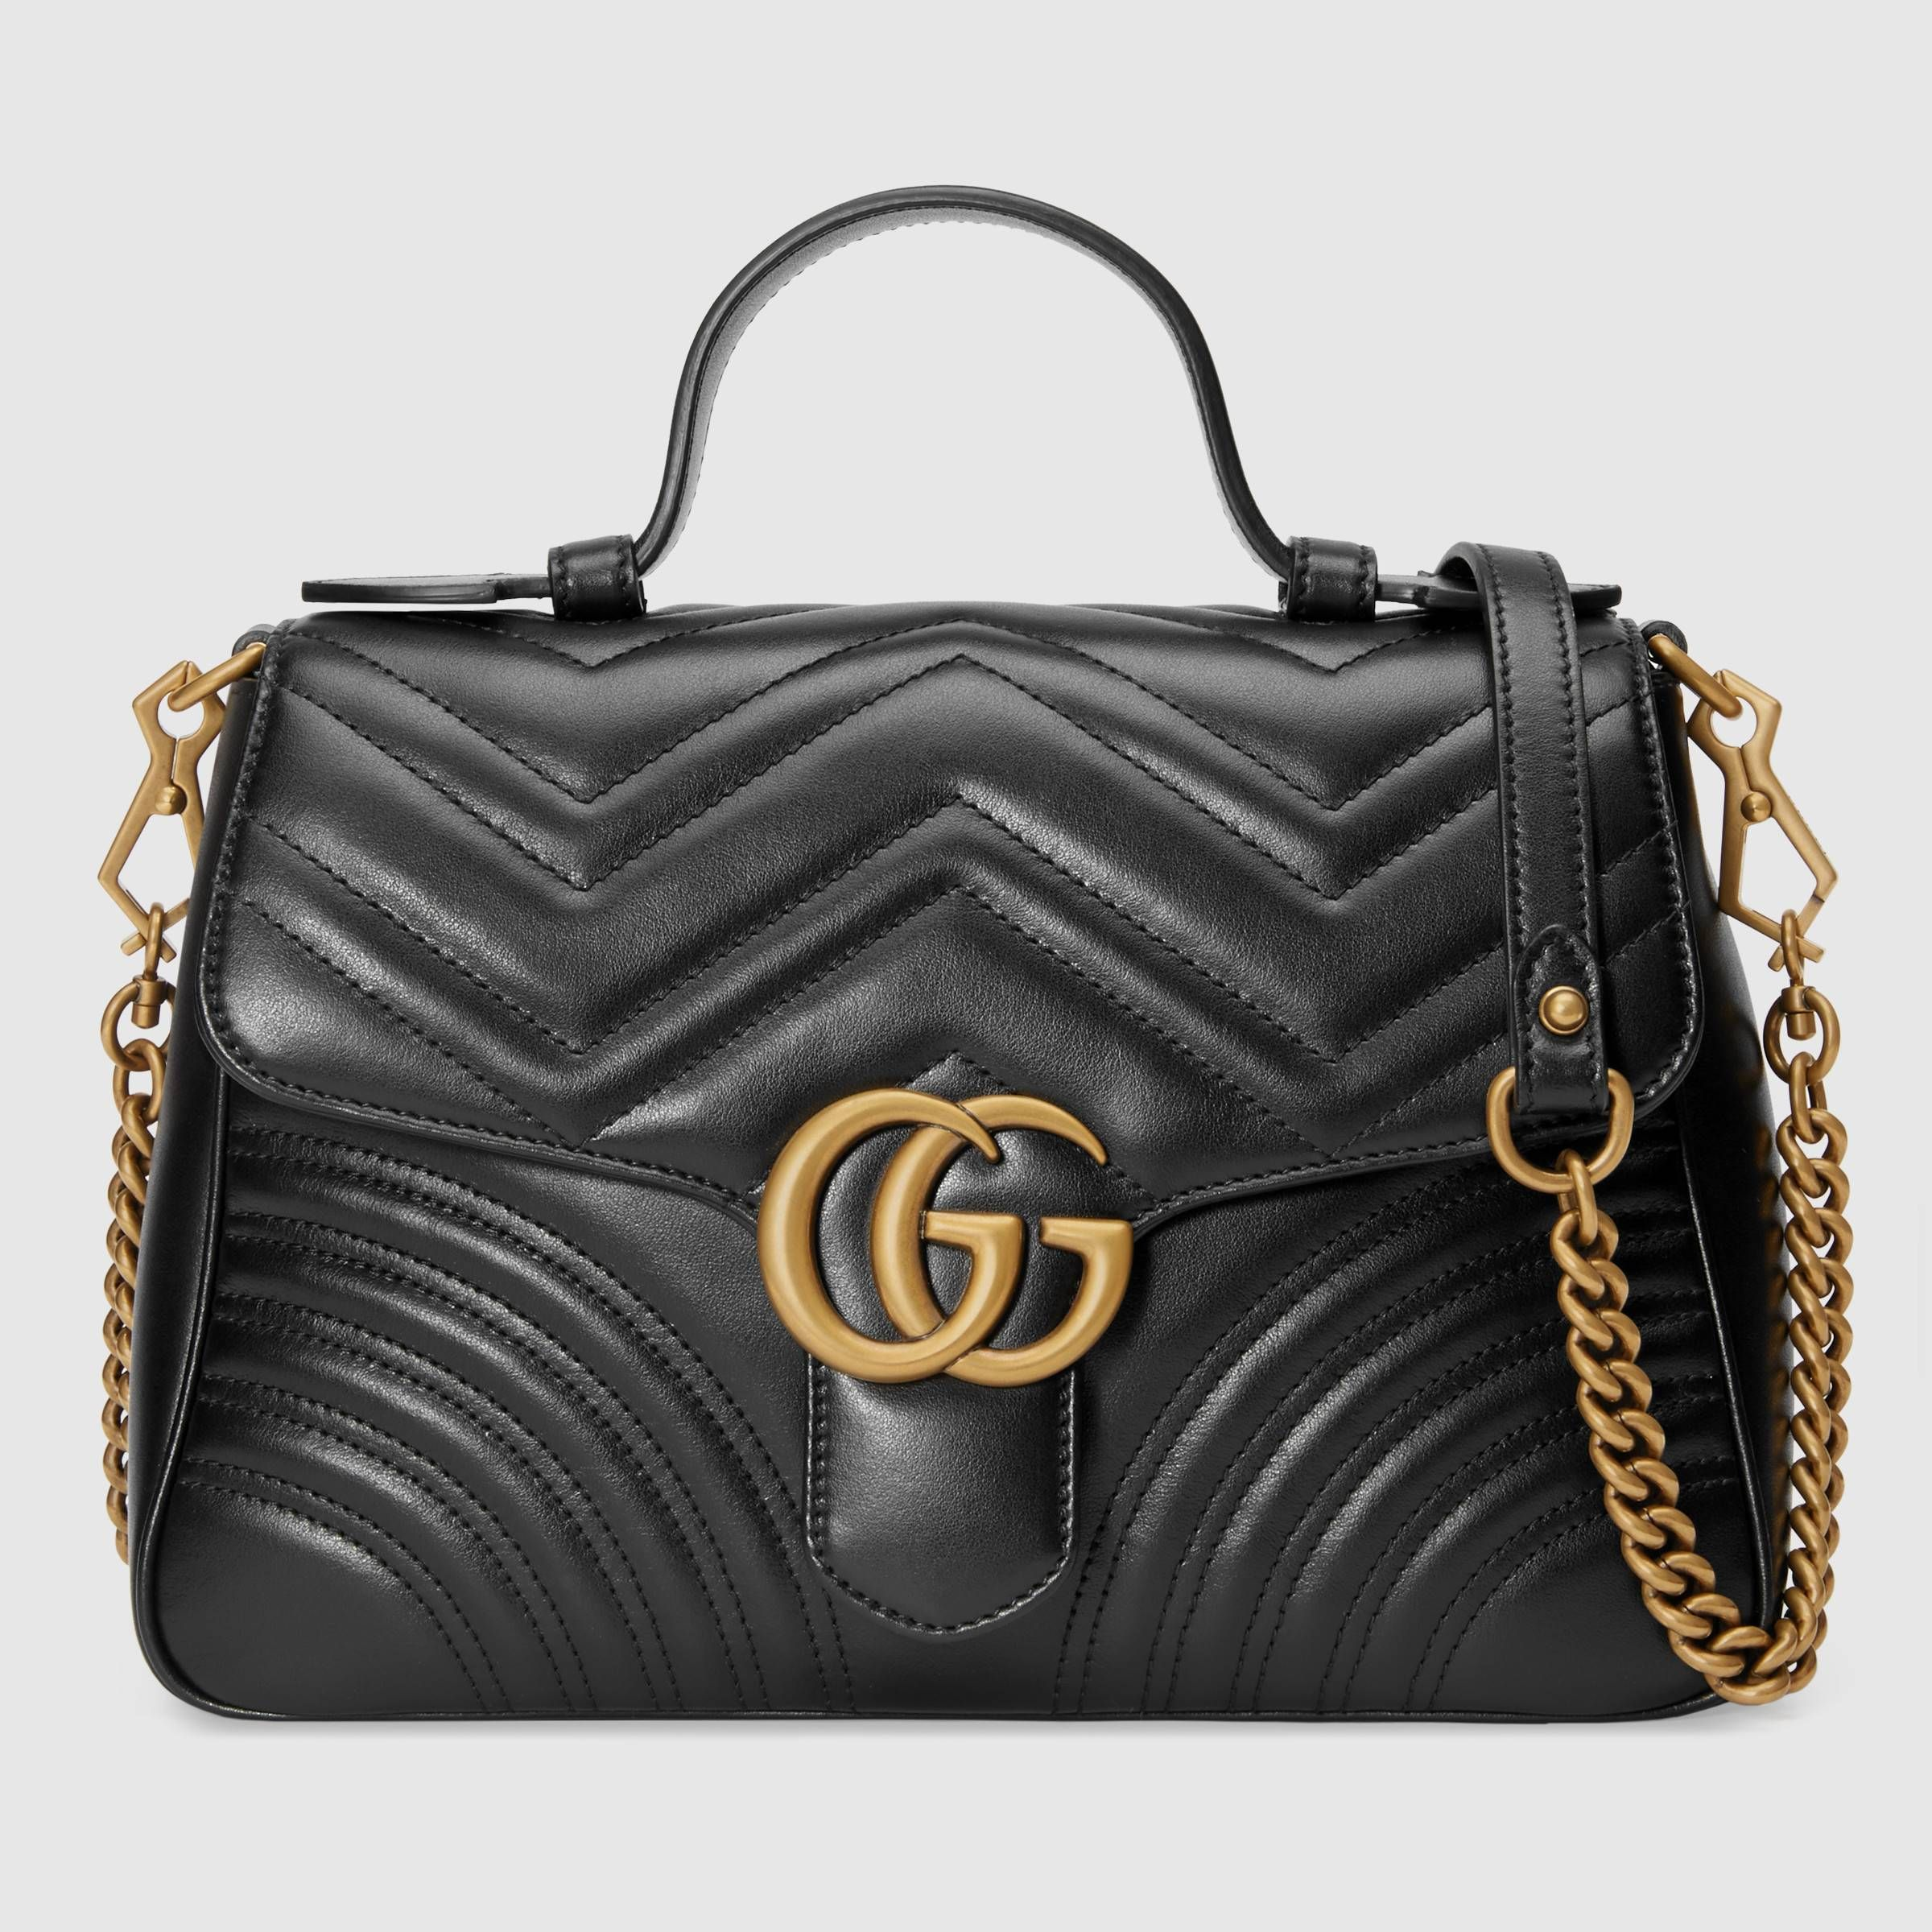 29e8d30a8b9cfc GG Marmont small top handle bag in 2019 | Handbags | Gg marmont ...